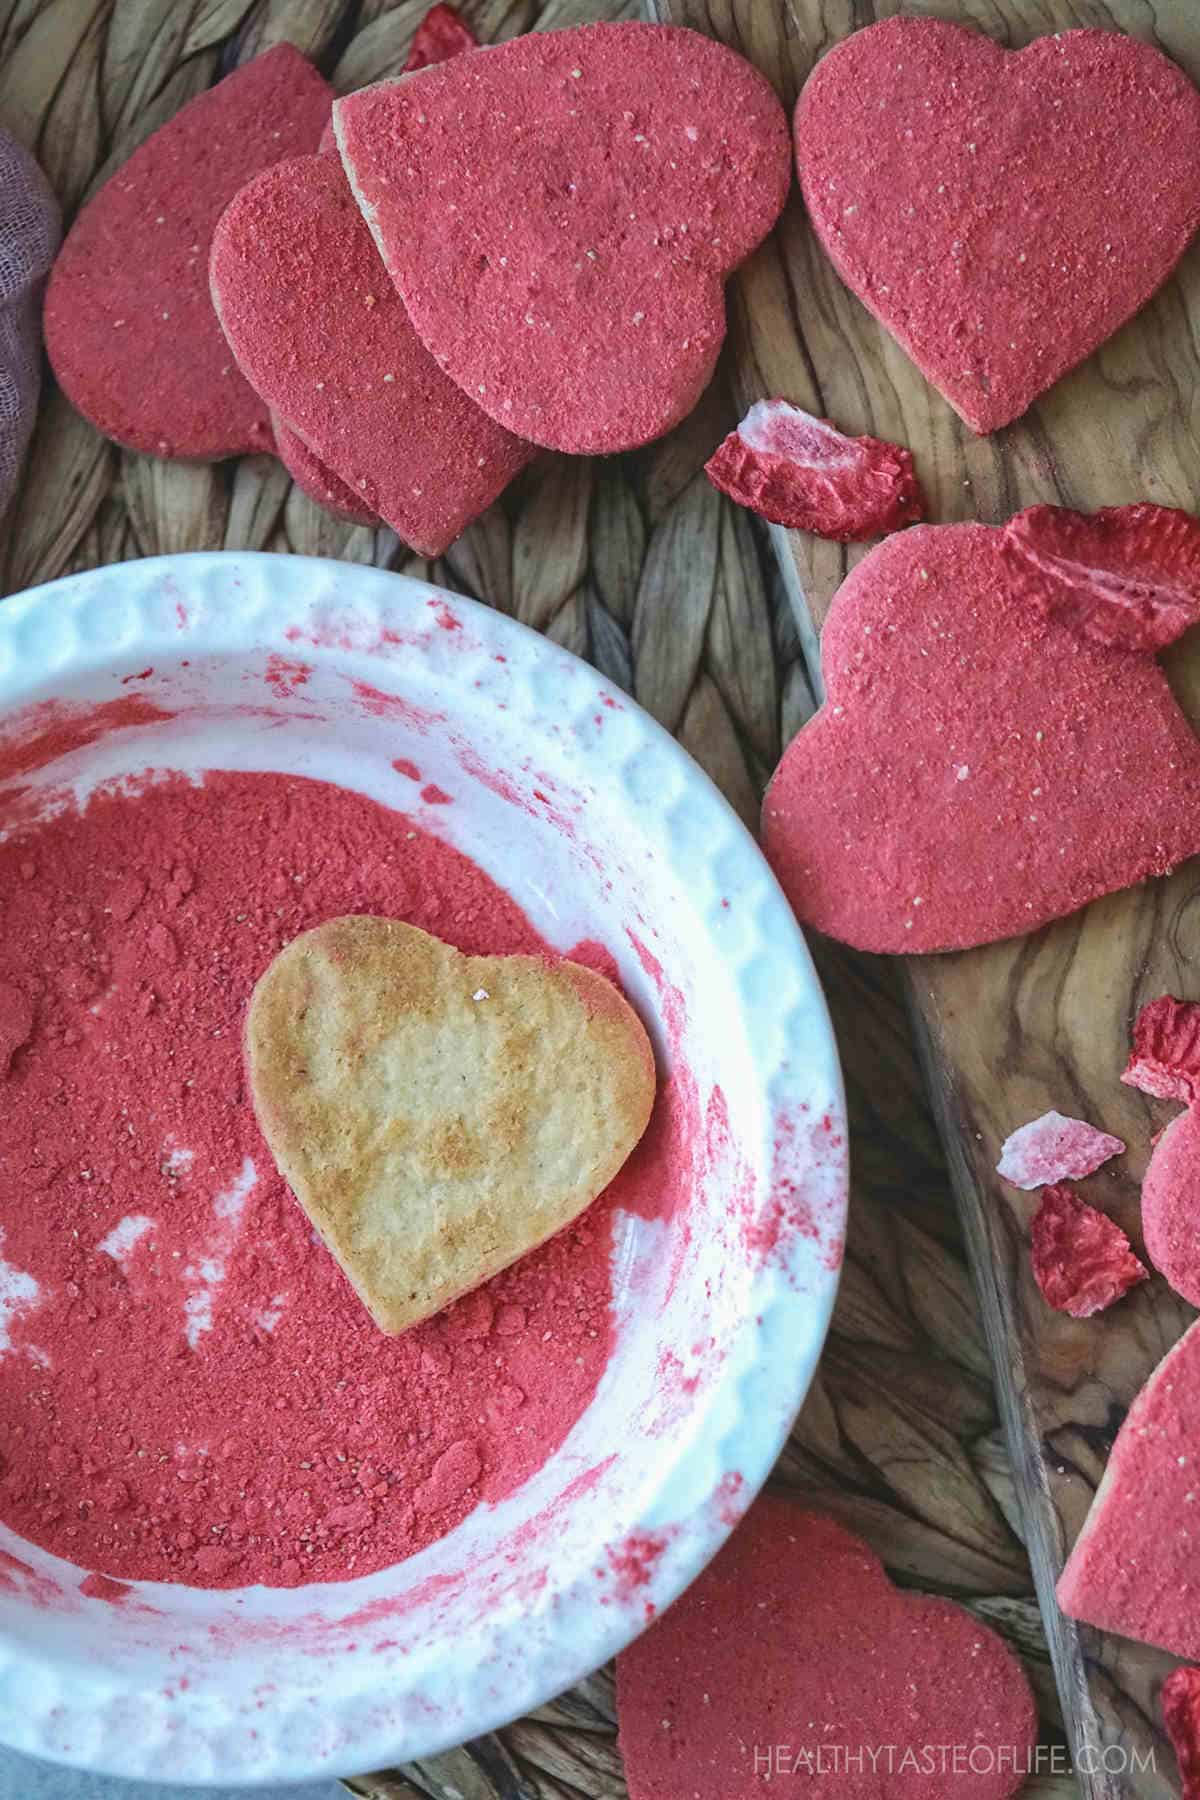 Healthy Vegan Gluten Free Heart Shaped Cookies Decorated With Freeze Dried Strawberry Powder